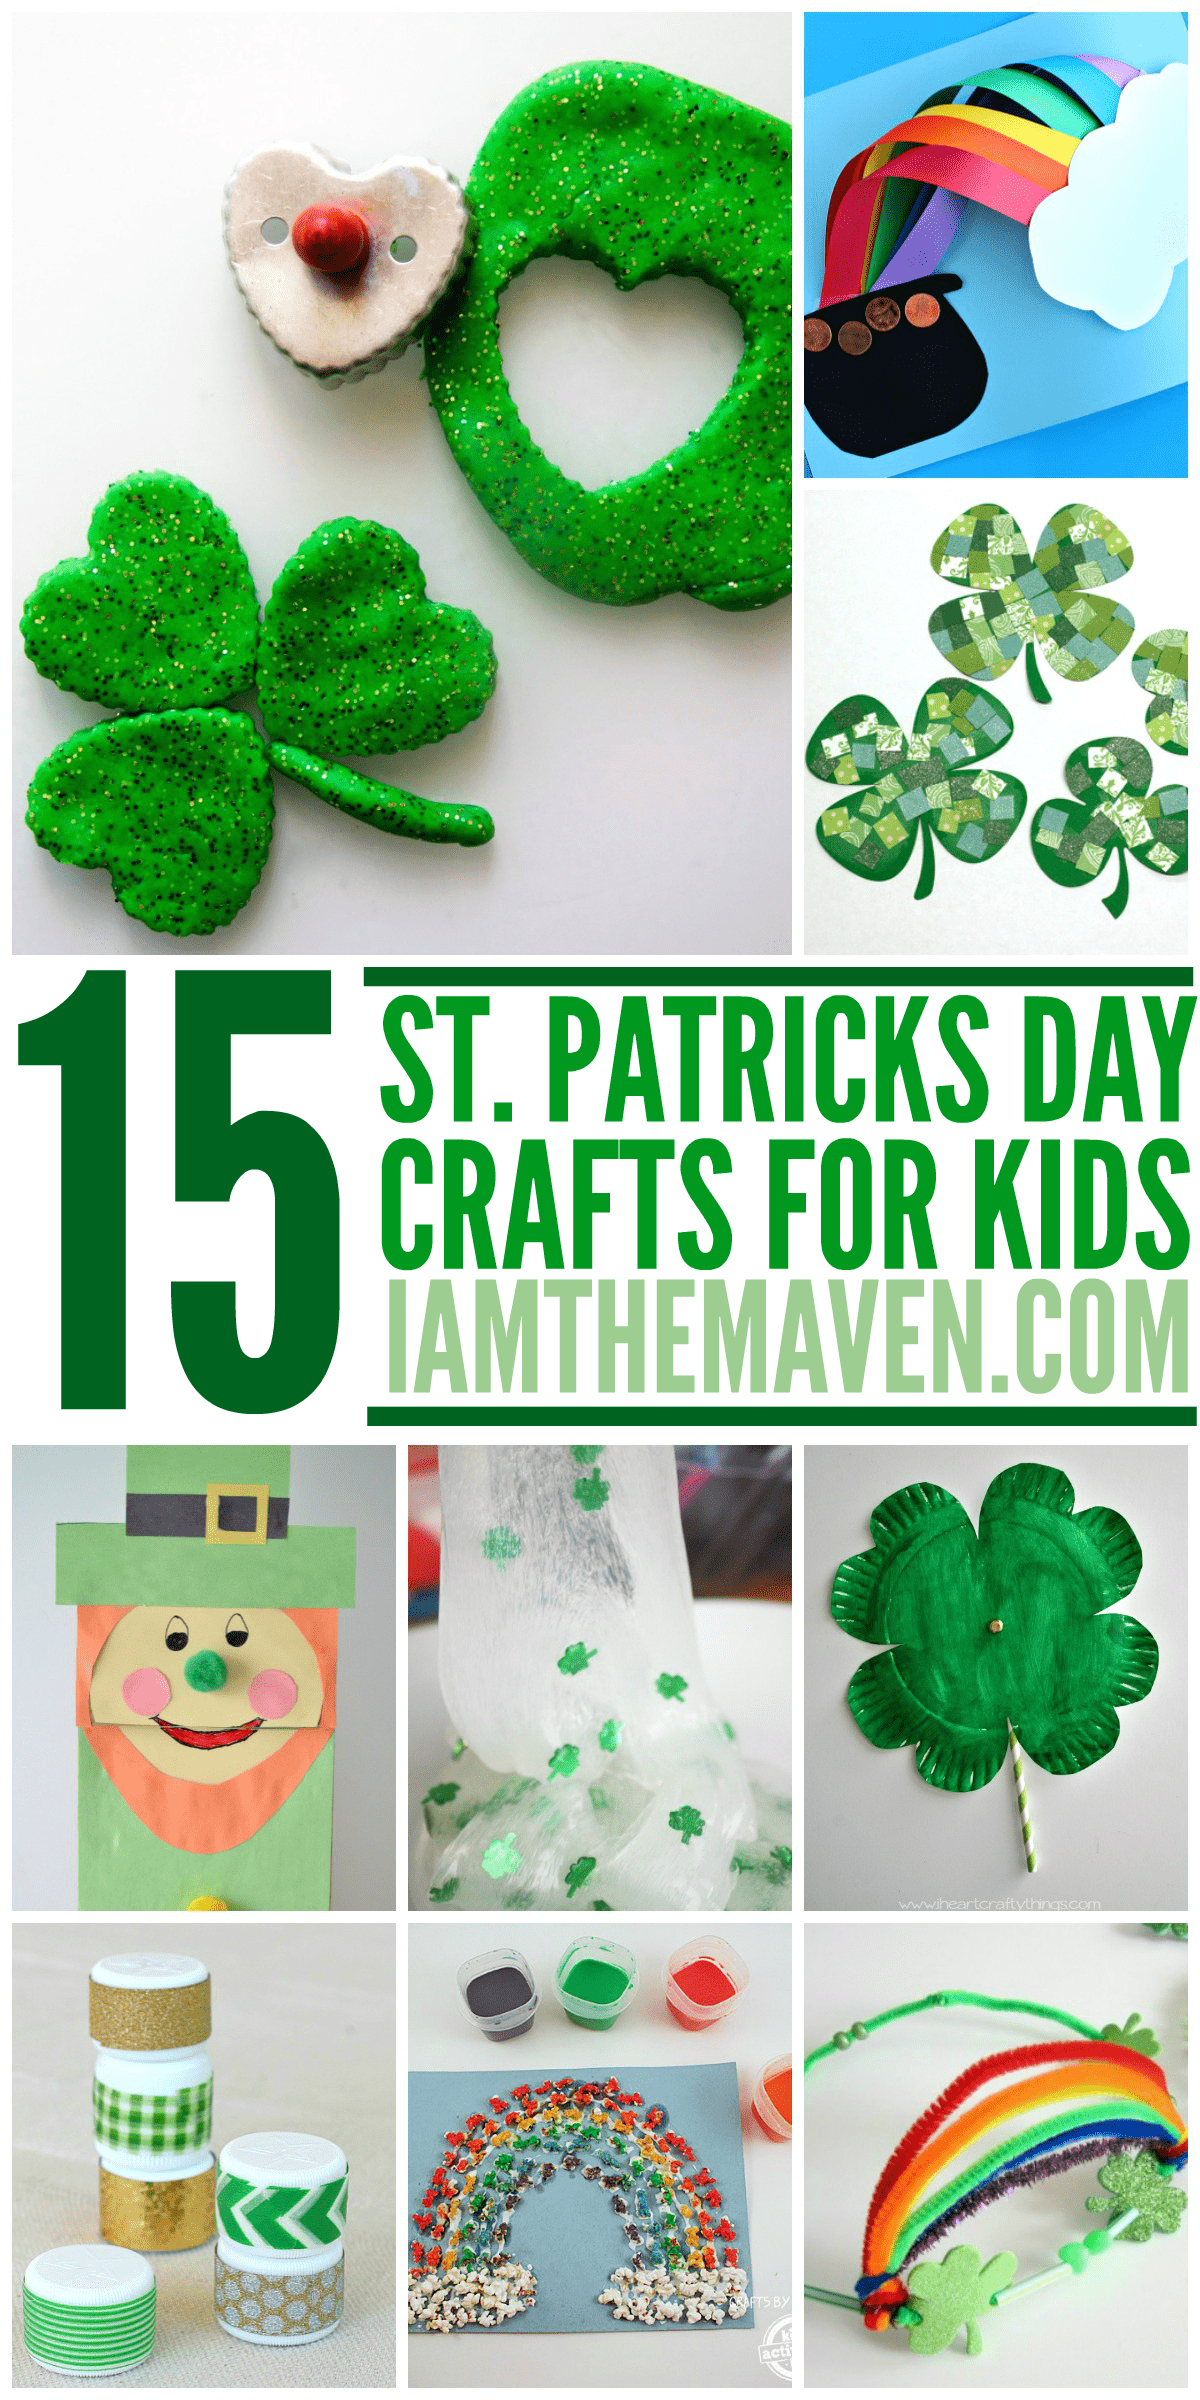 Here are 15 St. Patrick's Day Crafts for Kids